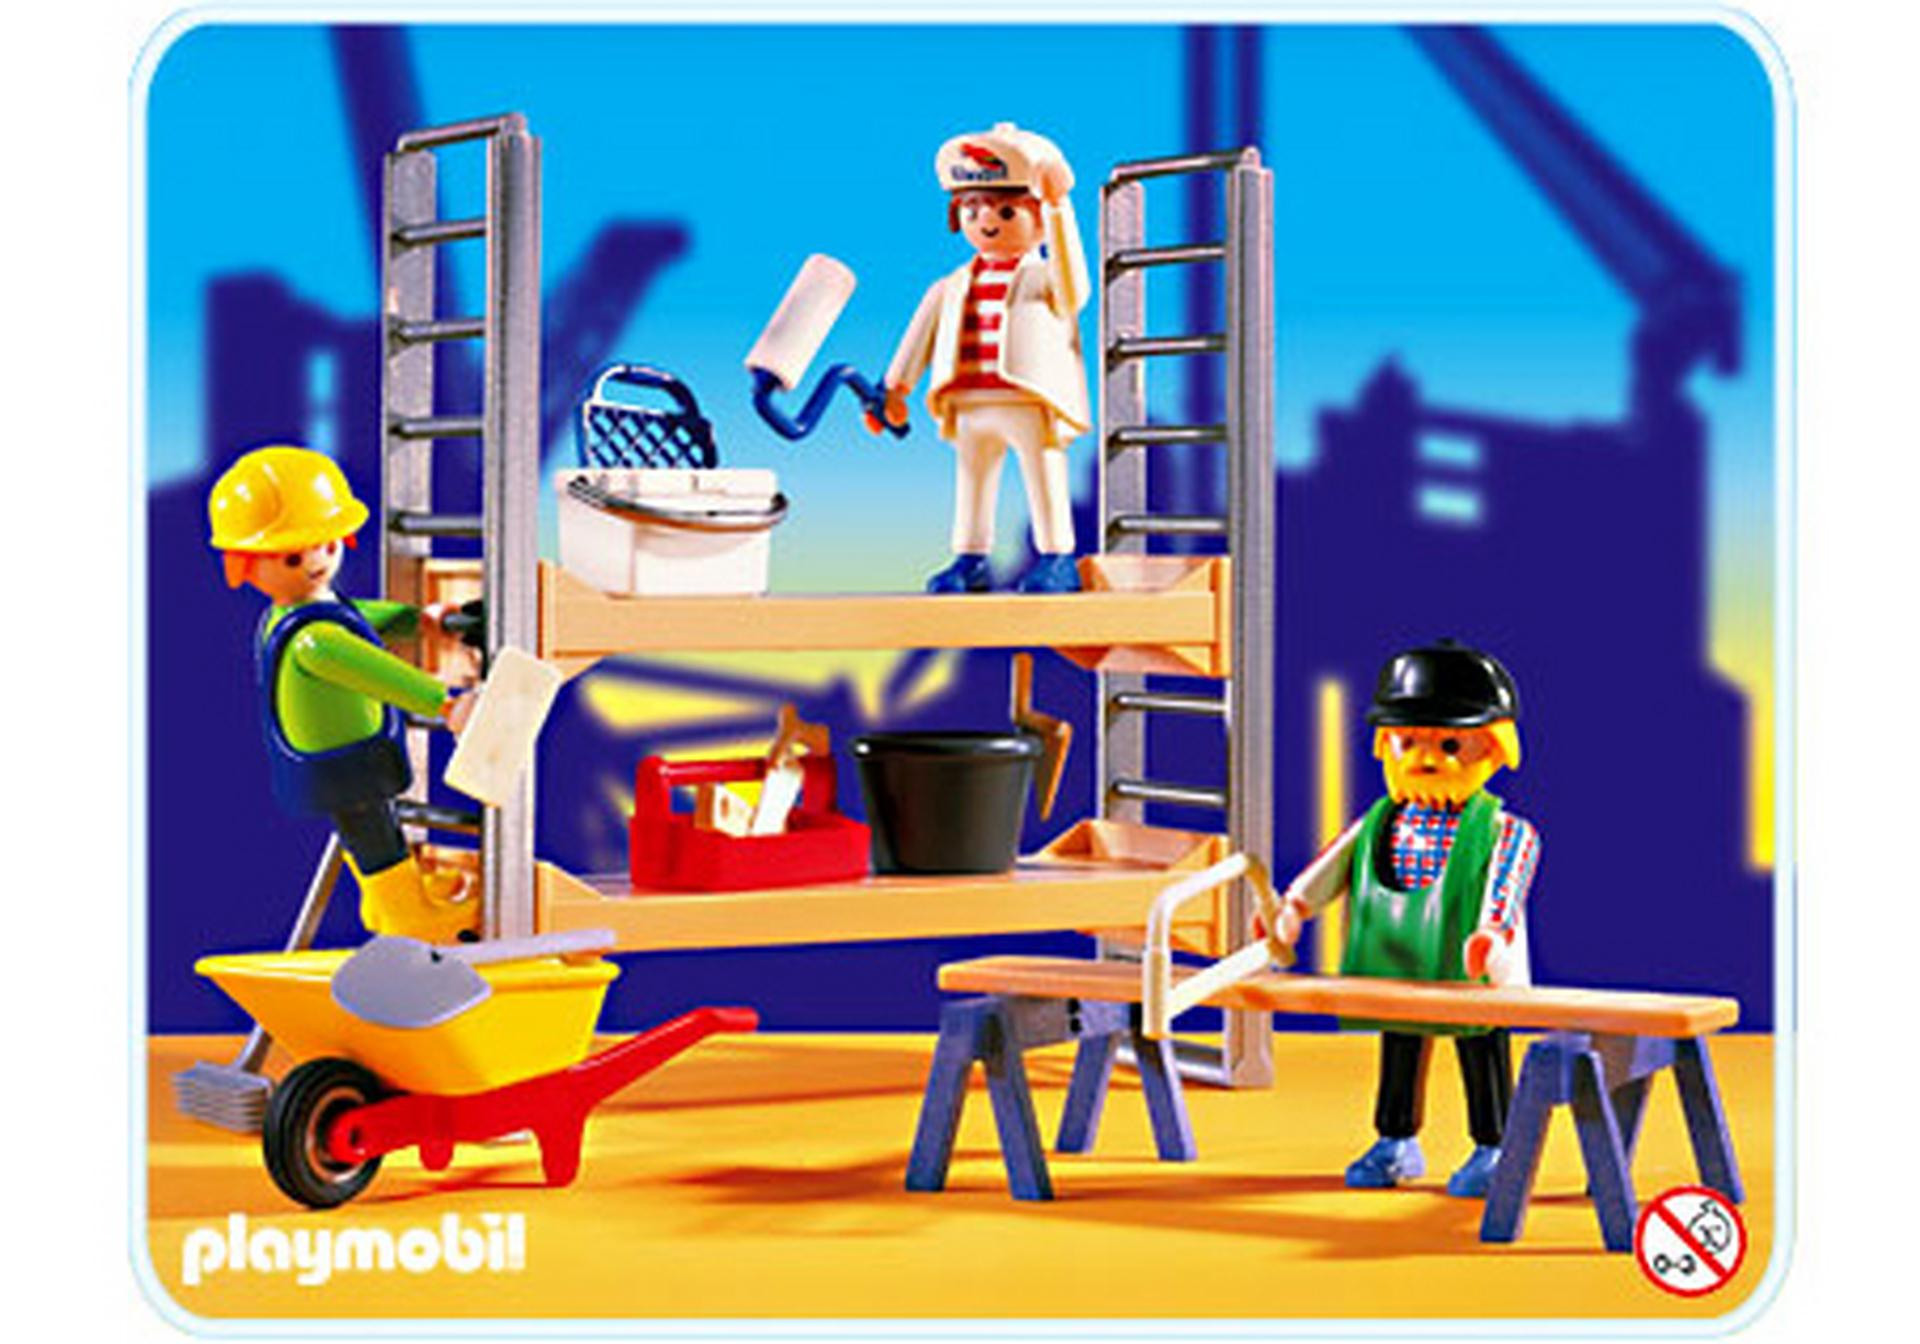 ouvriers de chantier chafaudage 3833 a playmobil france. Black Bedroom Furniture Sets. Home Design Ideas